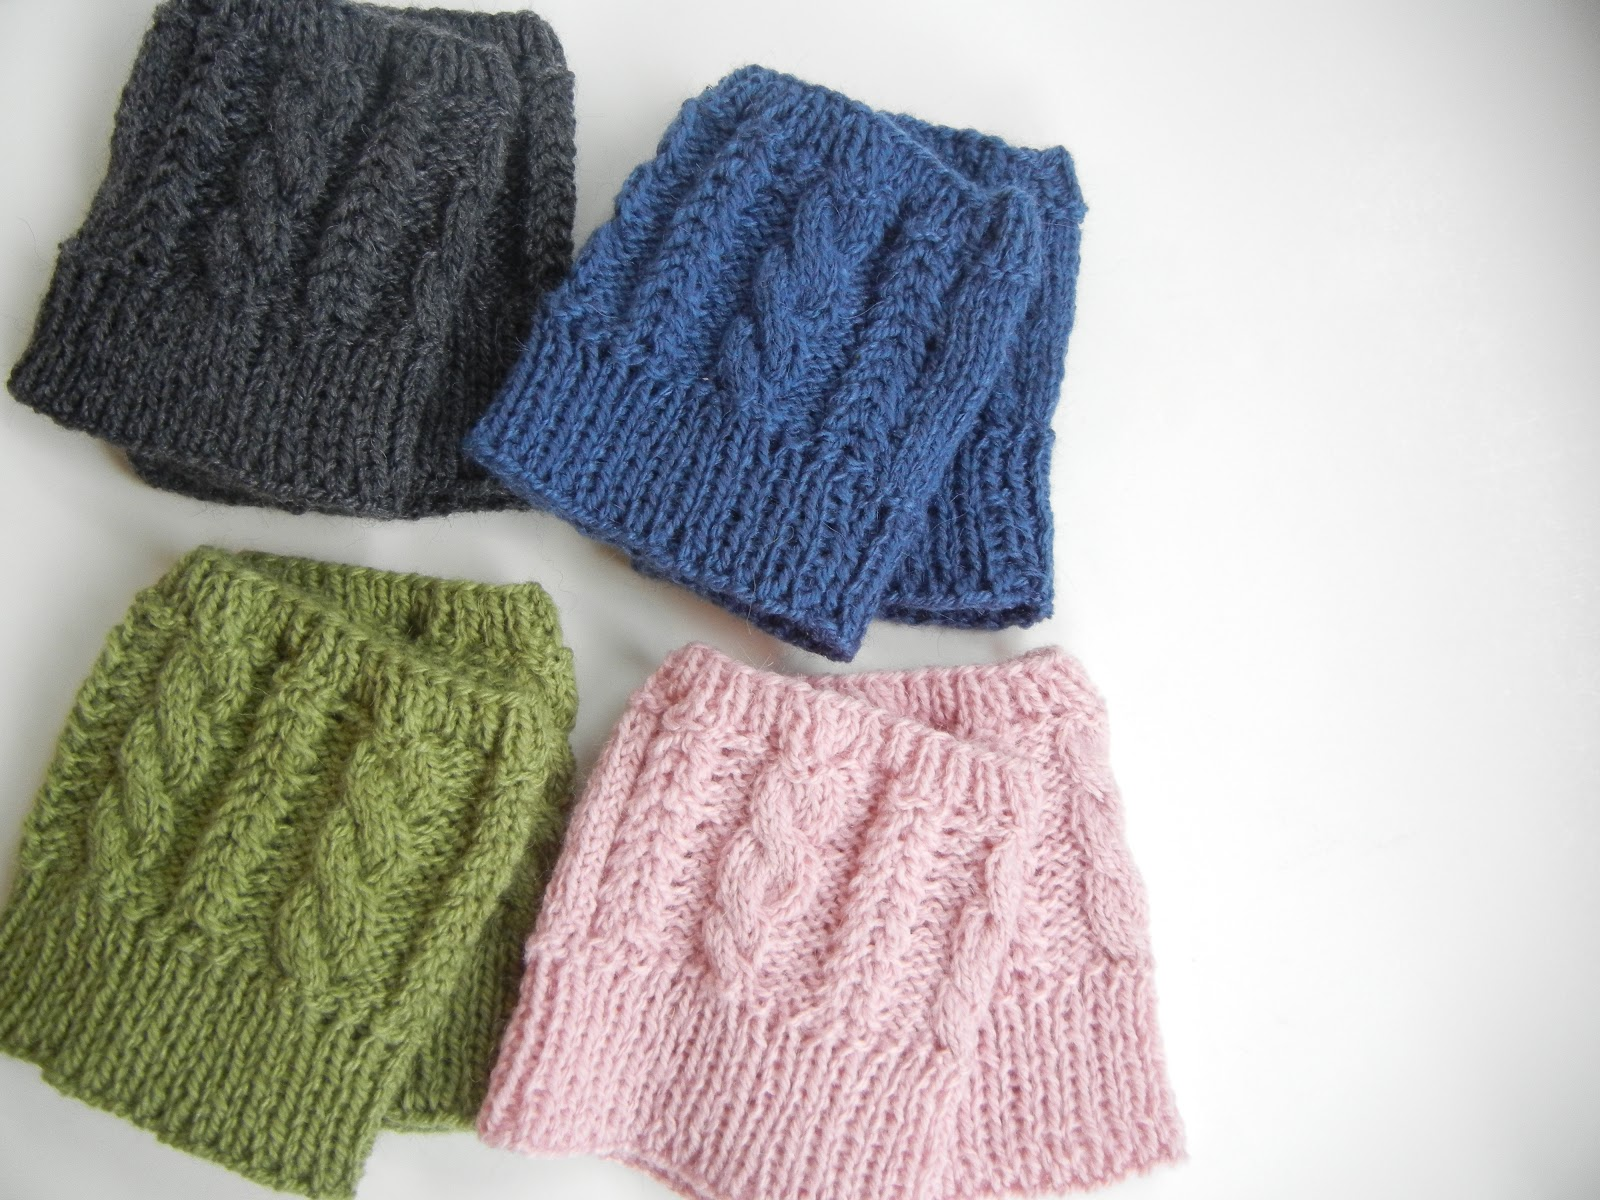 Knitting 4 Stitches Together : nook.: beccas cabled boot cuffs!